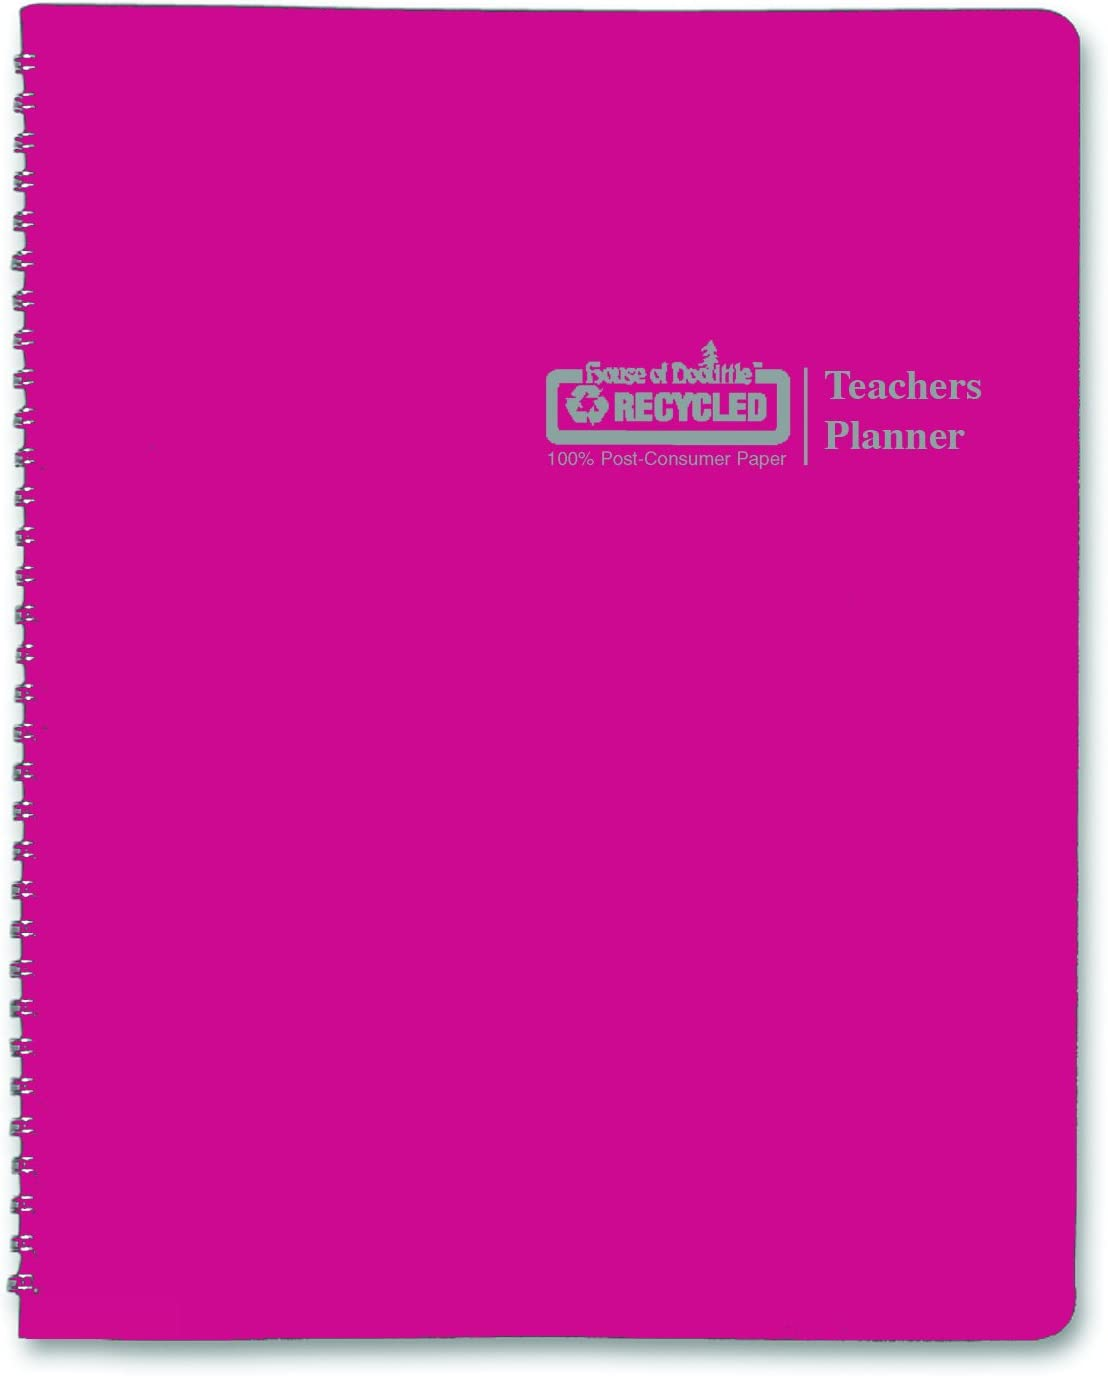 House of Doolittle Teachers Planner, Pink Leatherette Cover, 45 Weeks, 7 Periods, Seating Chart, Records, 8.5 x 11 Inch (HOD50905) : Office Products